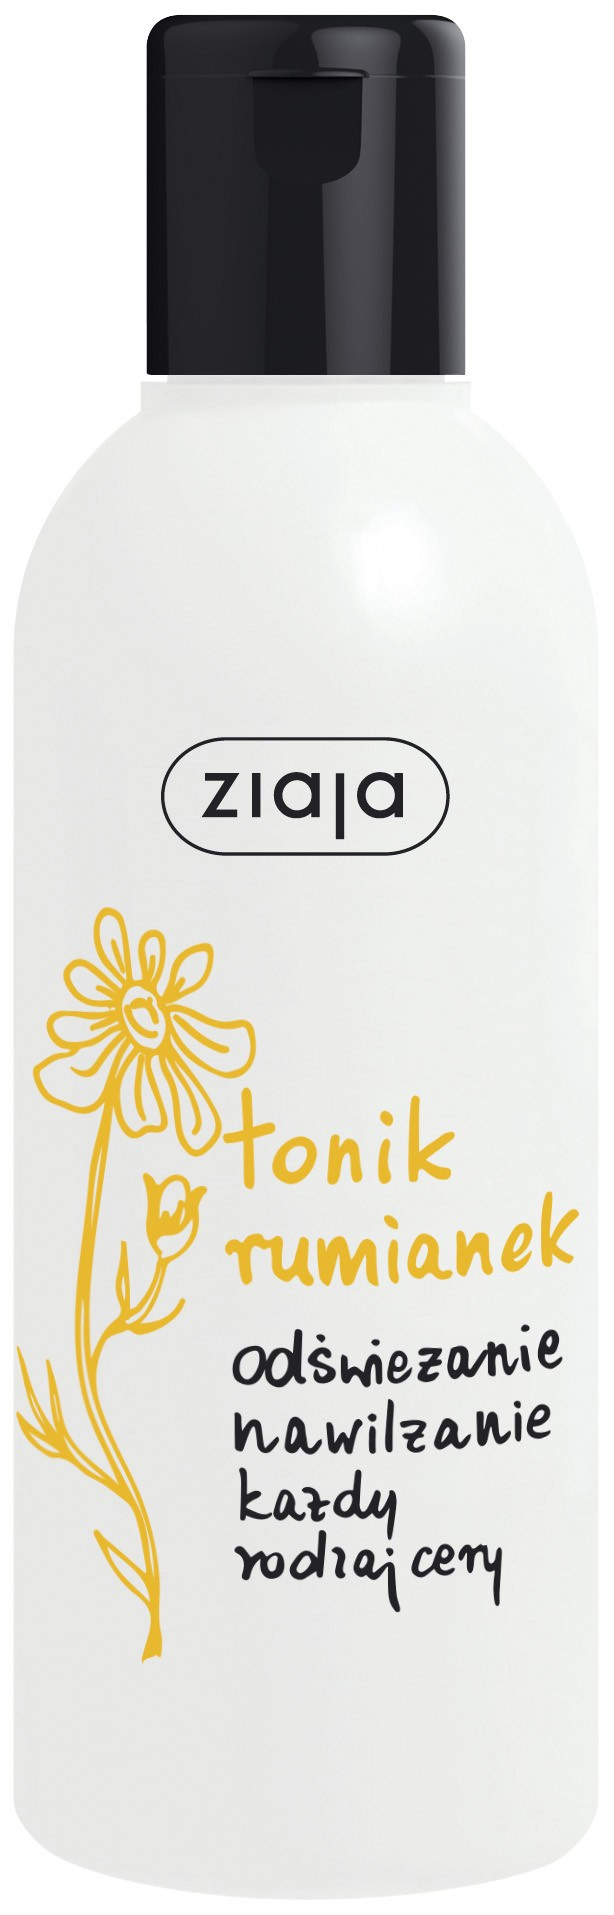 Ziaja harmanček tonikum 200ml